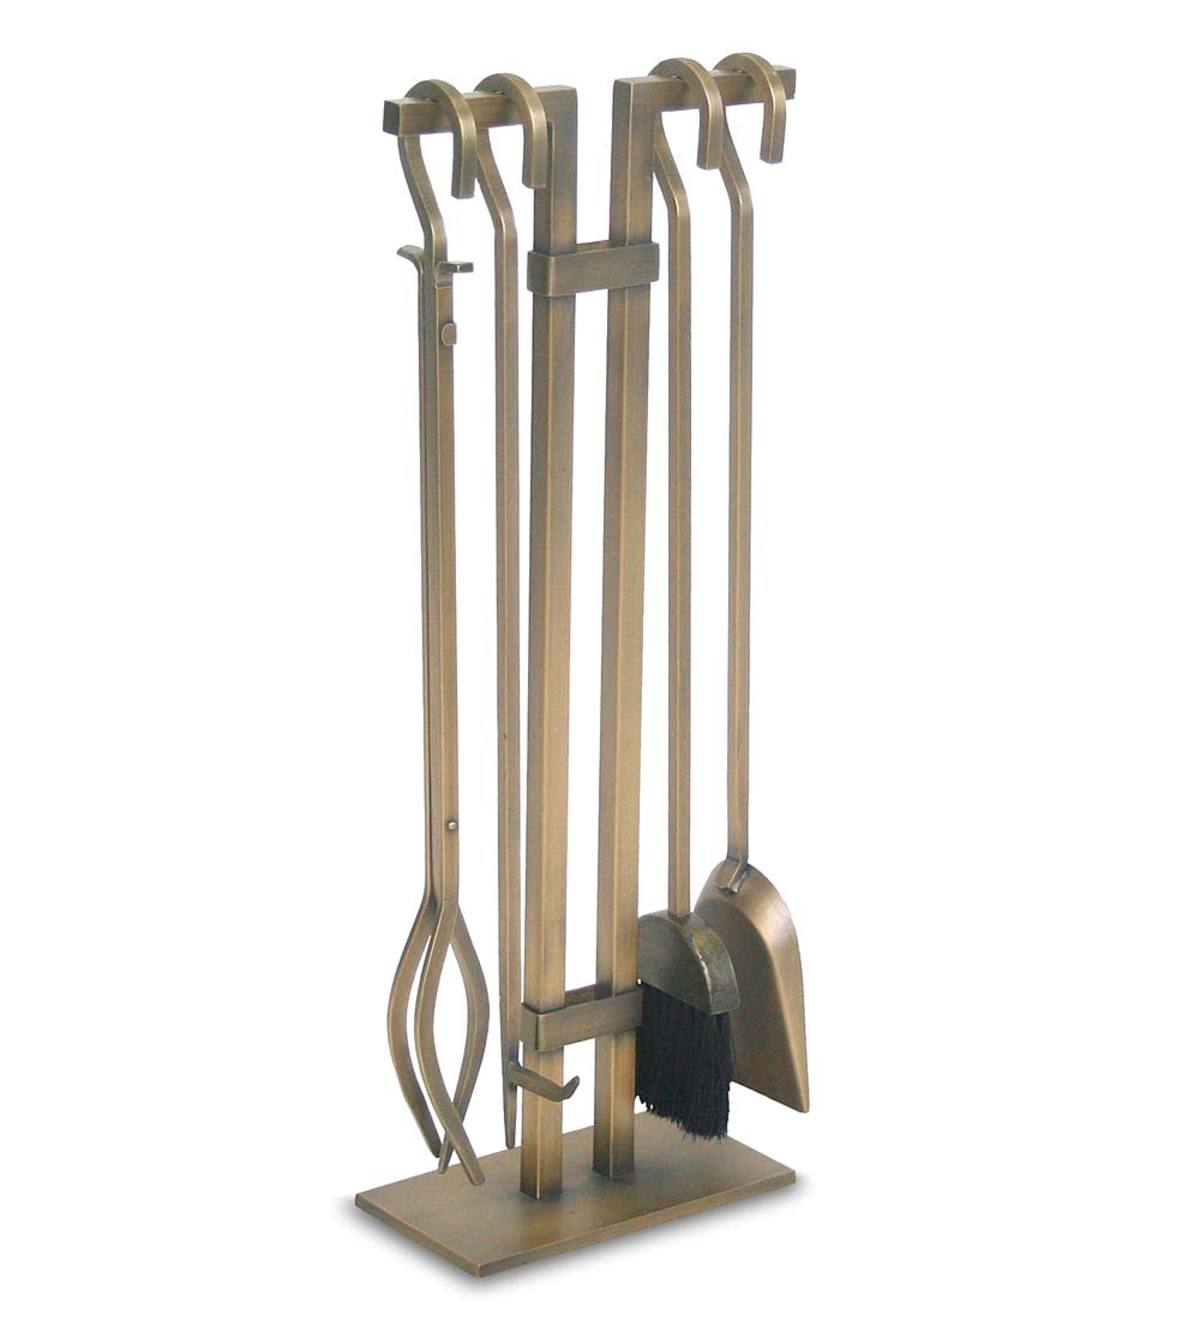 Sinclair 4-Pc. Brushed Brass Fireplace Tool Set - Brass